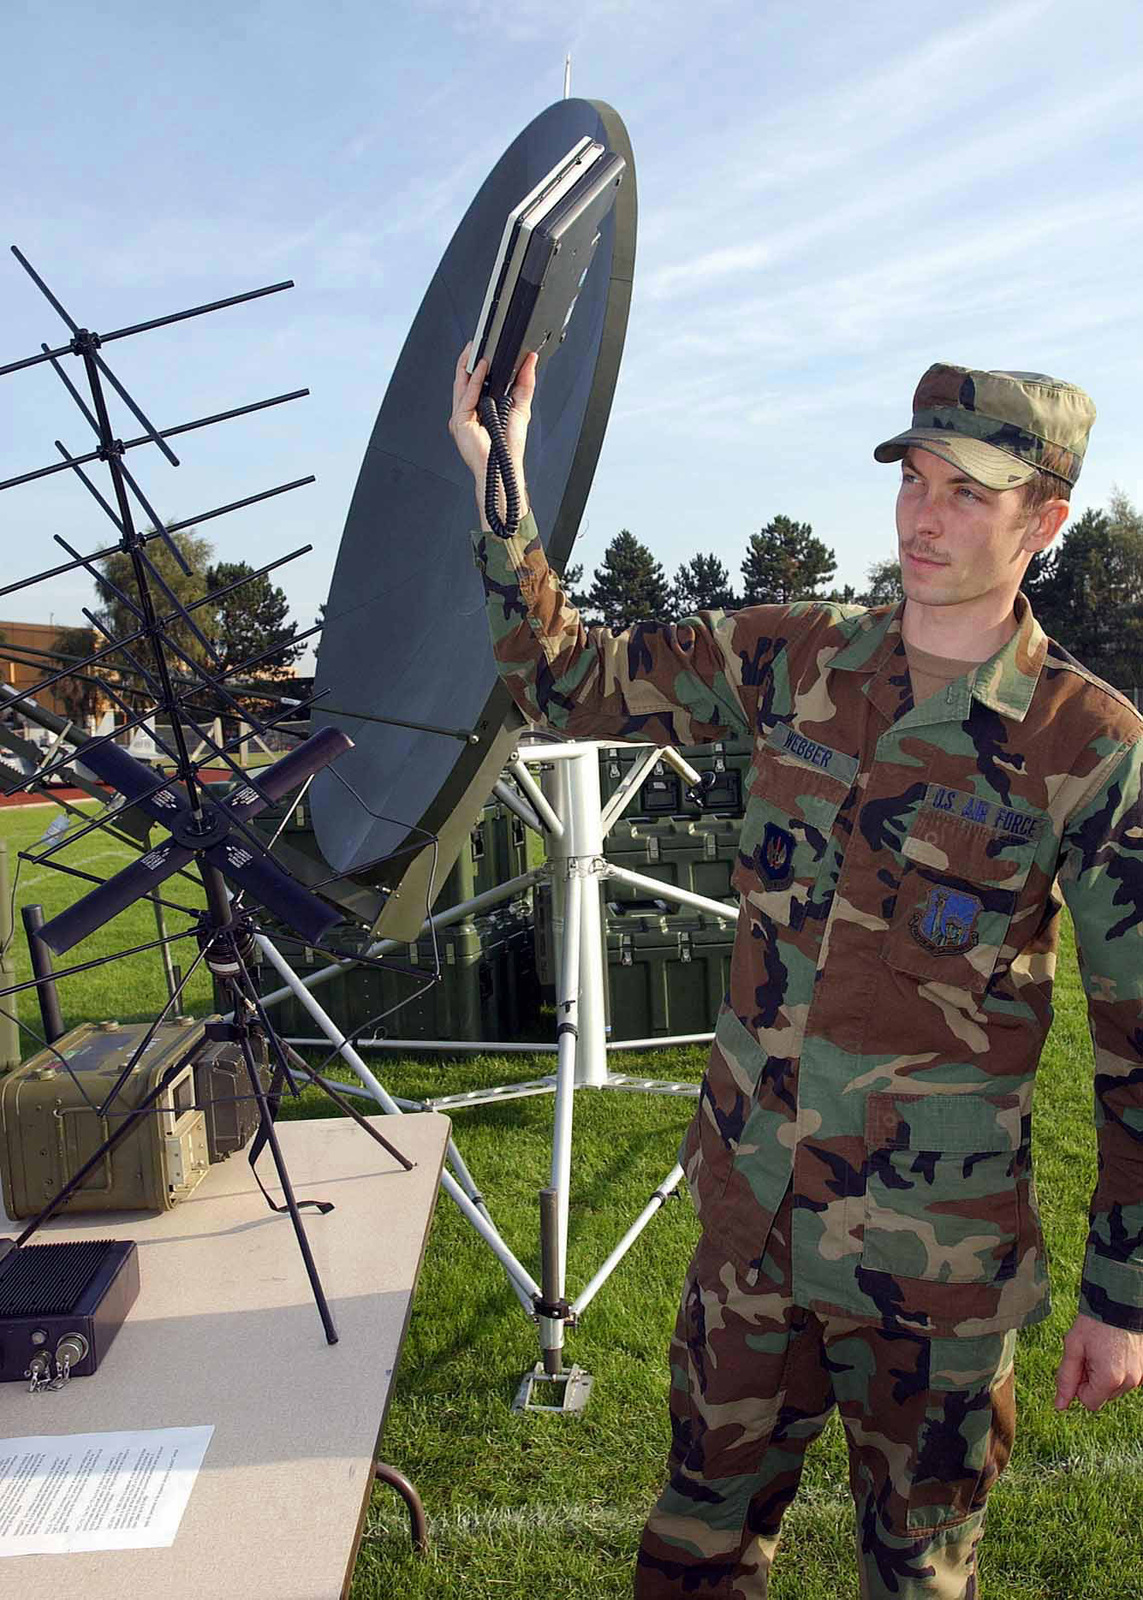 US Air Force (USAF) SENIOR AIRMAN (SRA) Stephen Webber, 48th Communications Squadron (CS), 48th Fighter Wing (FW), holds up an INMARSAT Communications display during the 48th Mission Support Group (MSG) Commander's Call being held at Royal Air Force (RAF) Lakenheath, United Kingdom (UK)